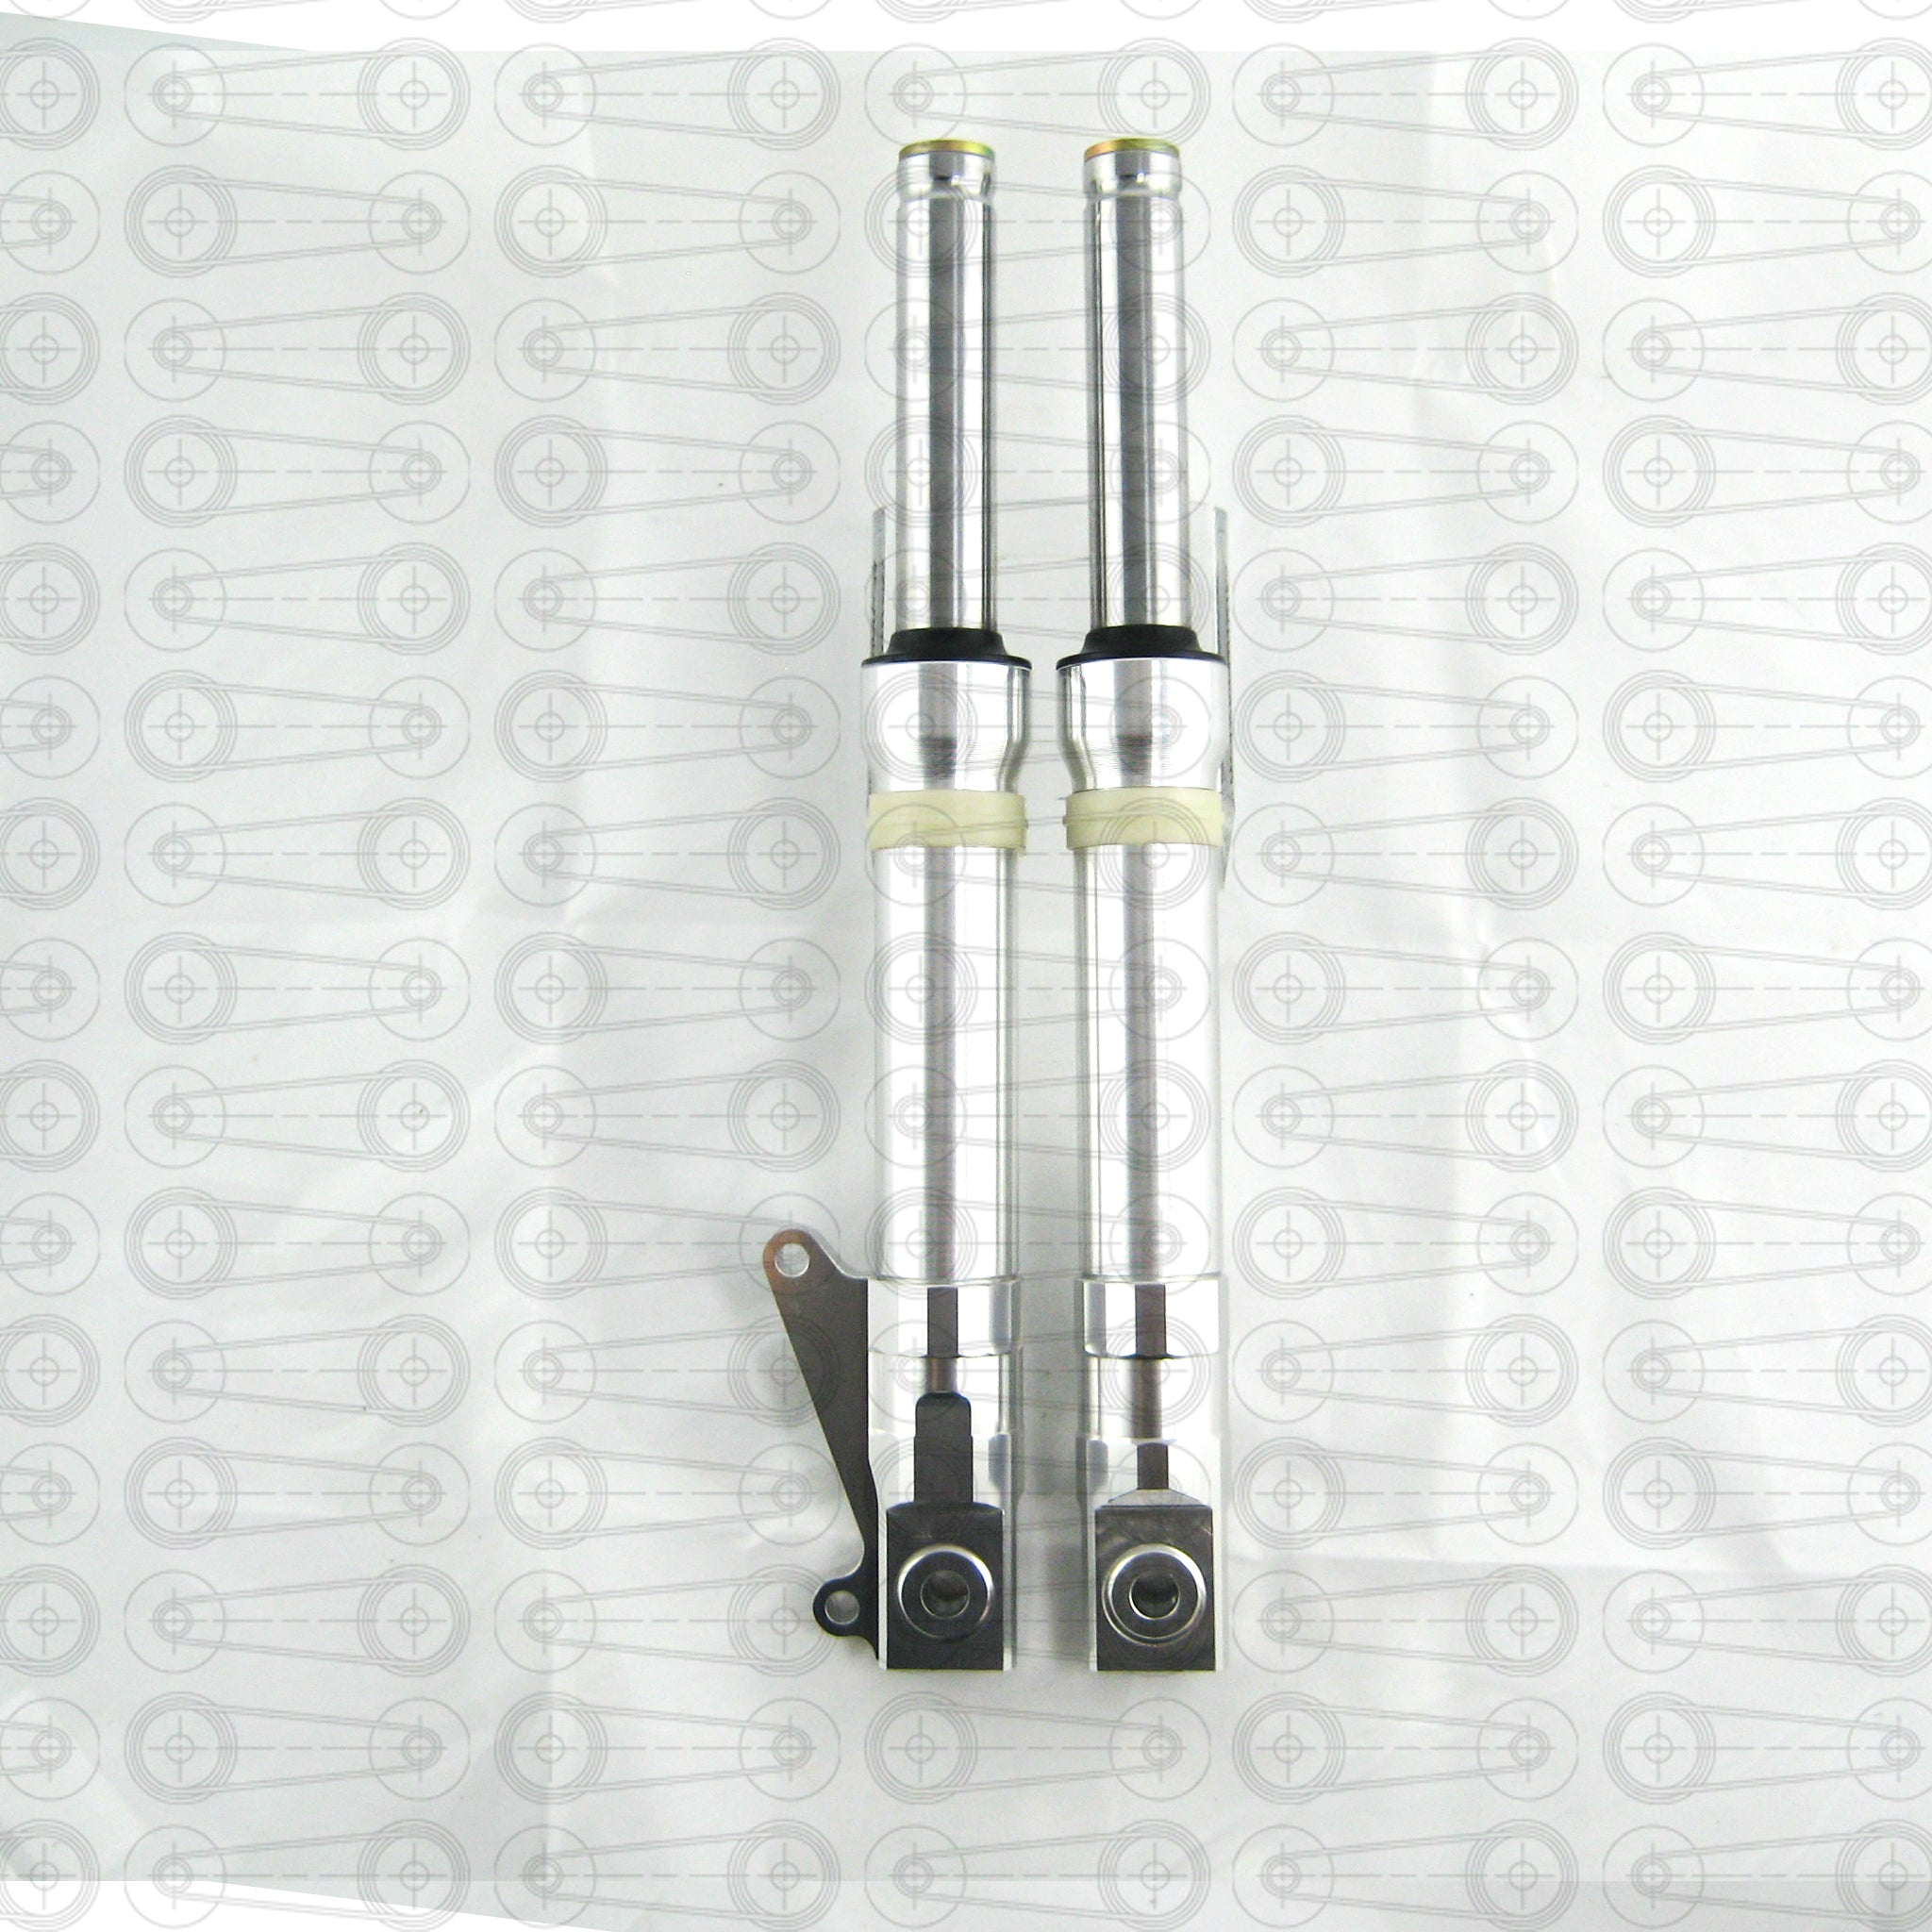 Performance - Front Forks (DIO)